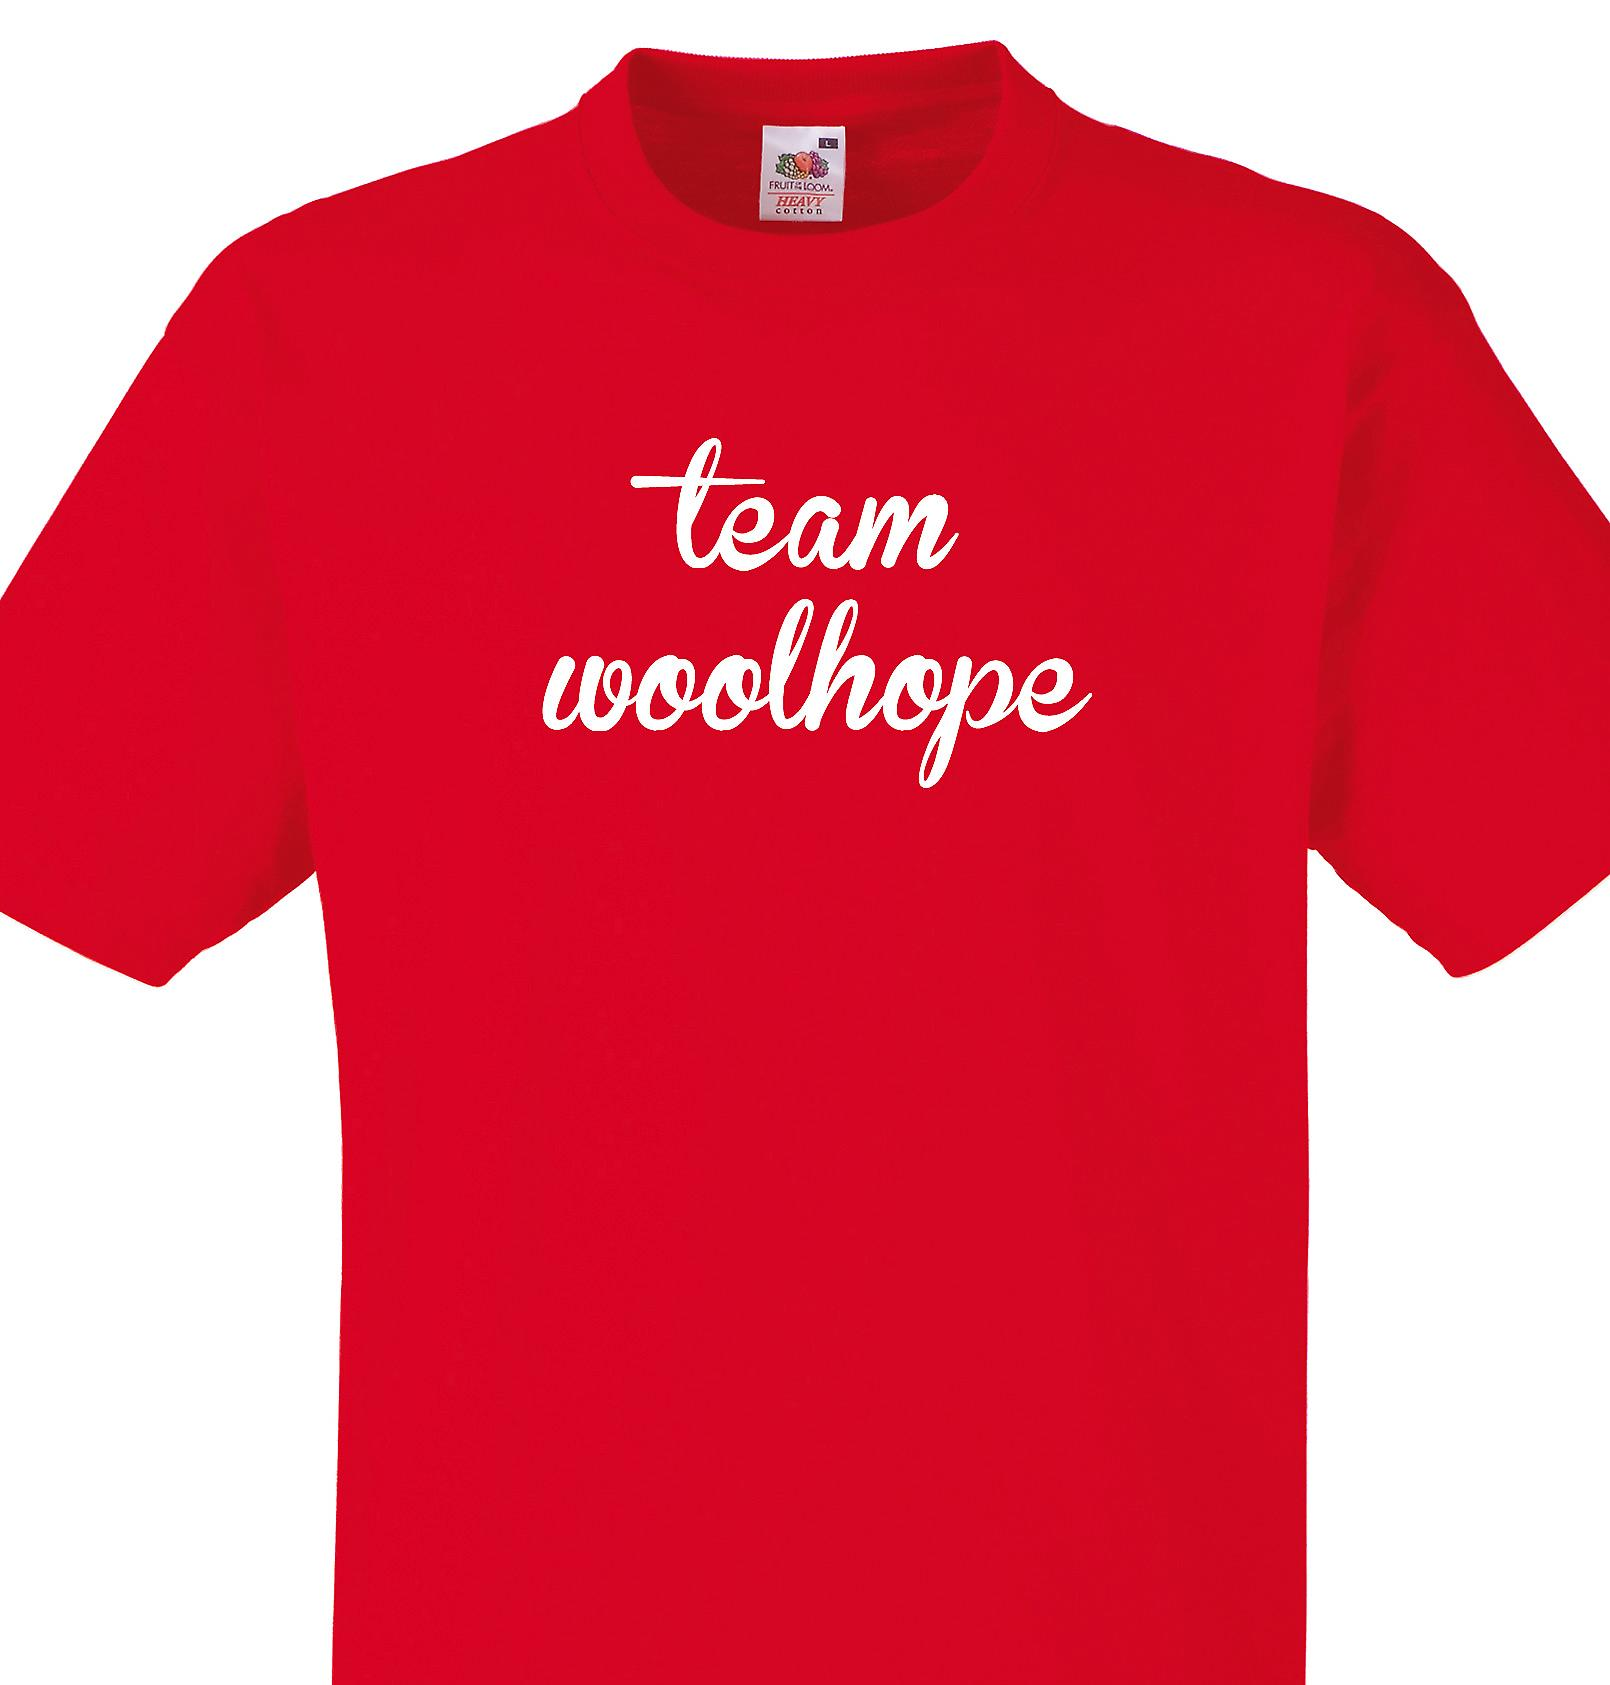 Team Woolhope Red T shirt